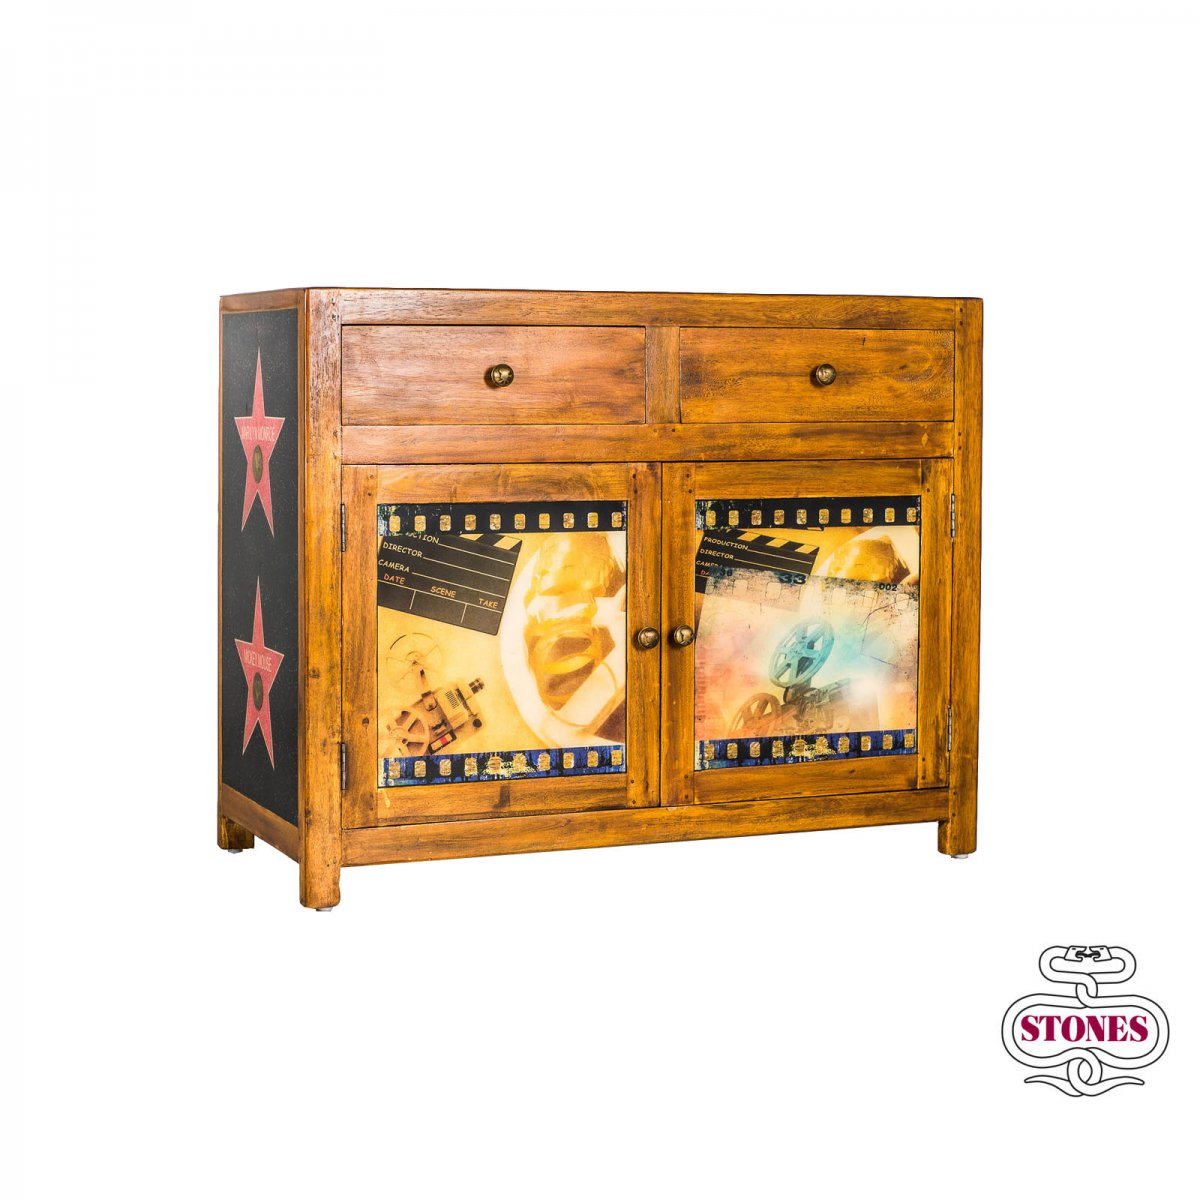 Stones Madia Hollywood in legno